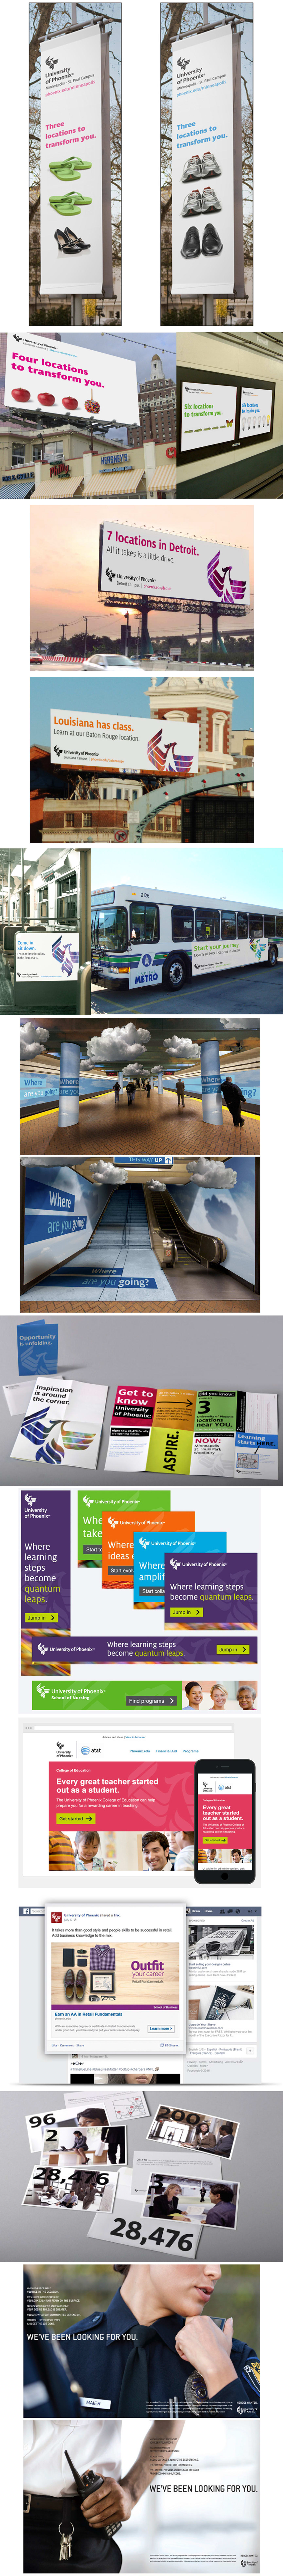 University of Phoenix REBRAND and National Advertising Campaigns